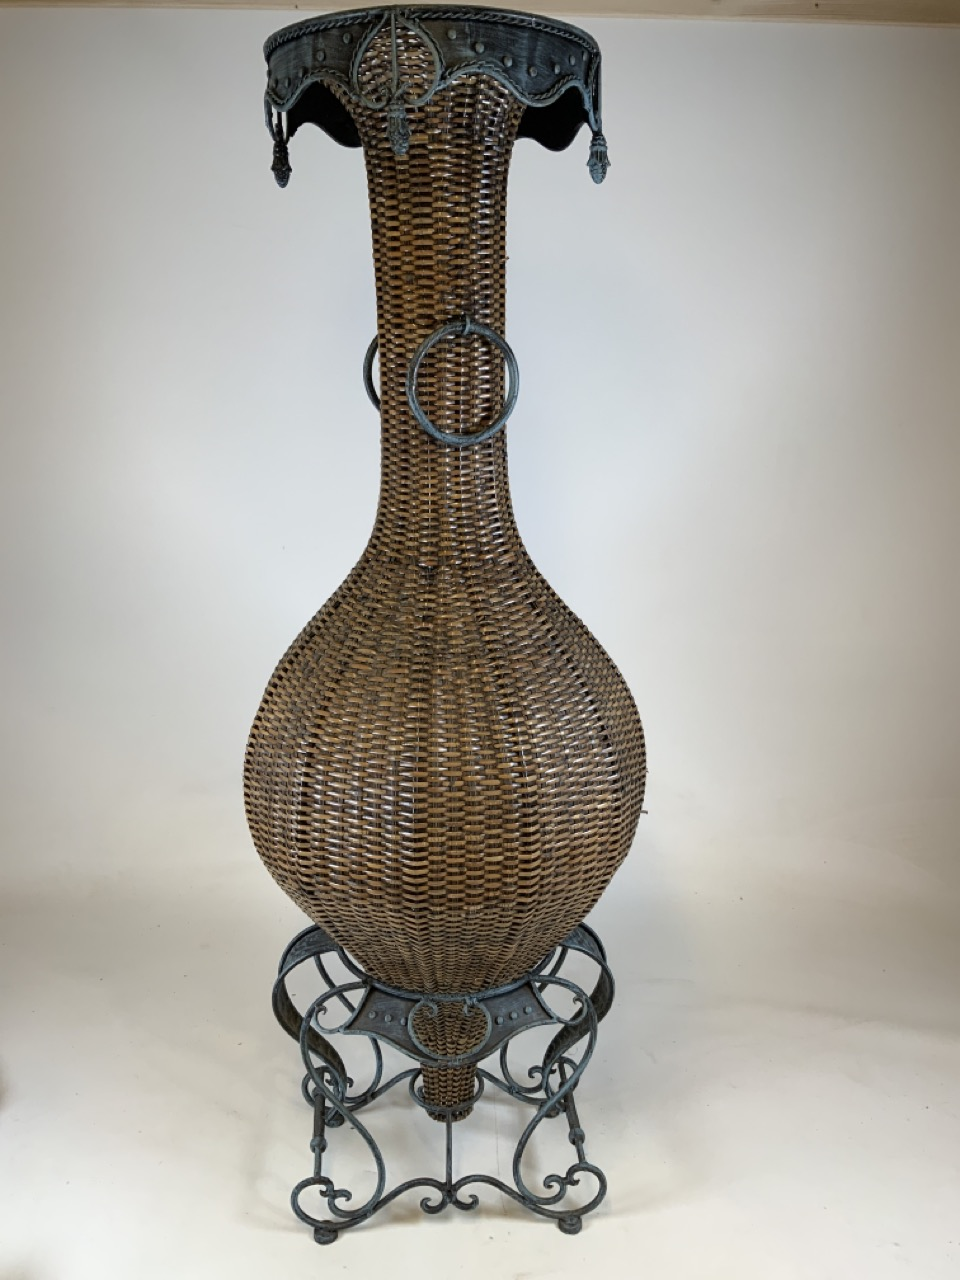 A large wicker conservatory vase in stand with metal hoop handles and decorative metal top. W:24cm x